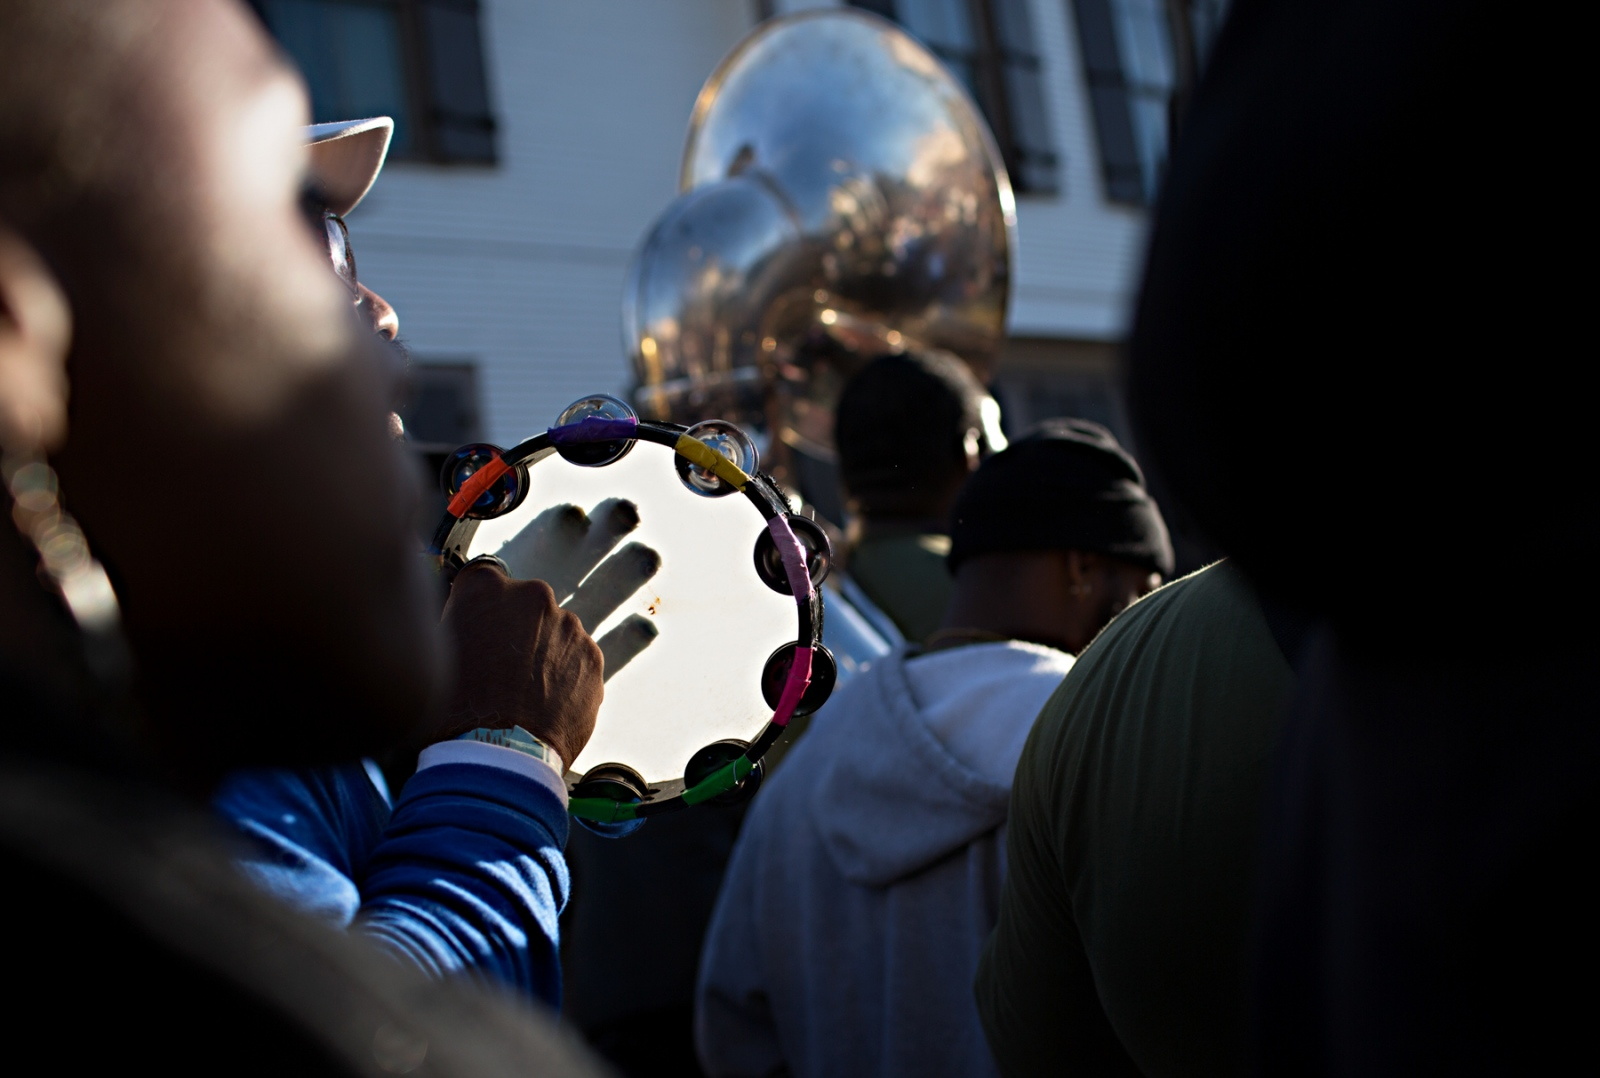 A tambourine player member of a brass band plays along under the afternoon sun during a Second Line Parade.